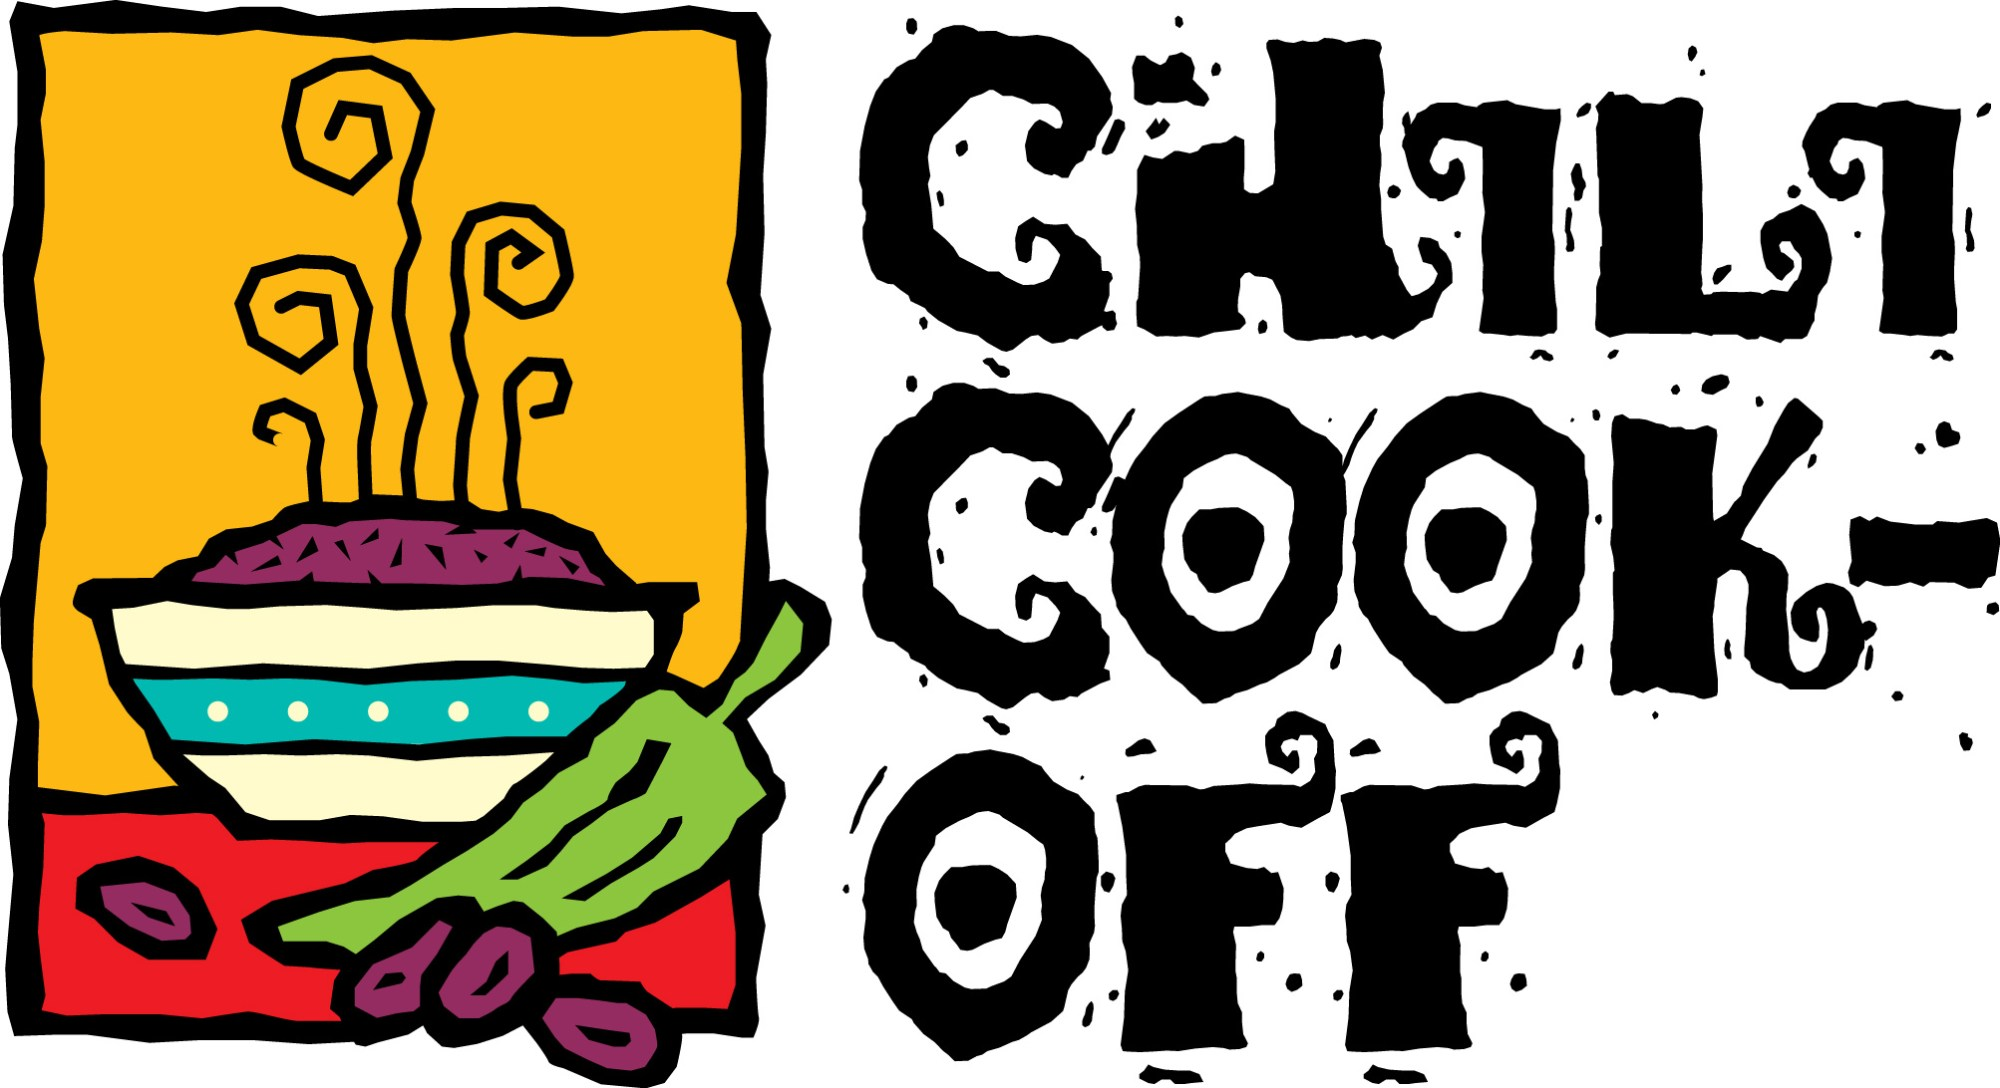 hight resolution of recipe clipart church chili cook off fundraiser